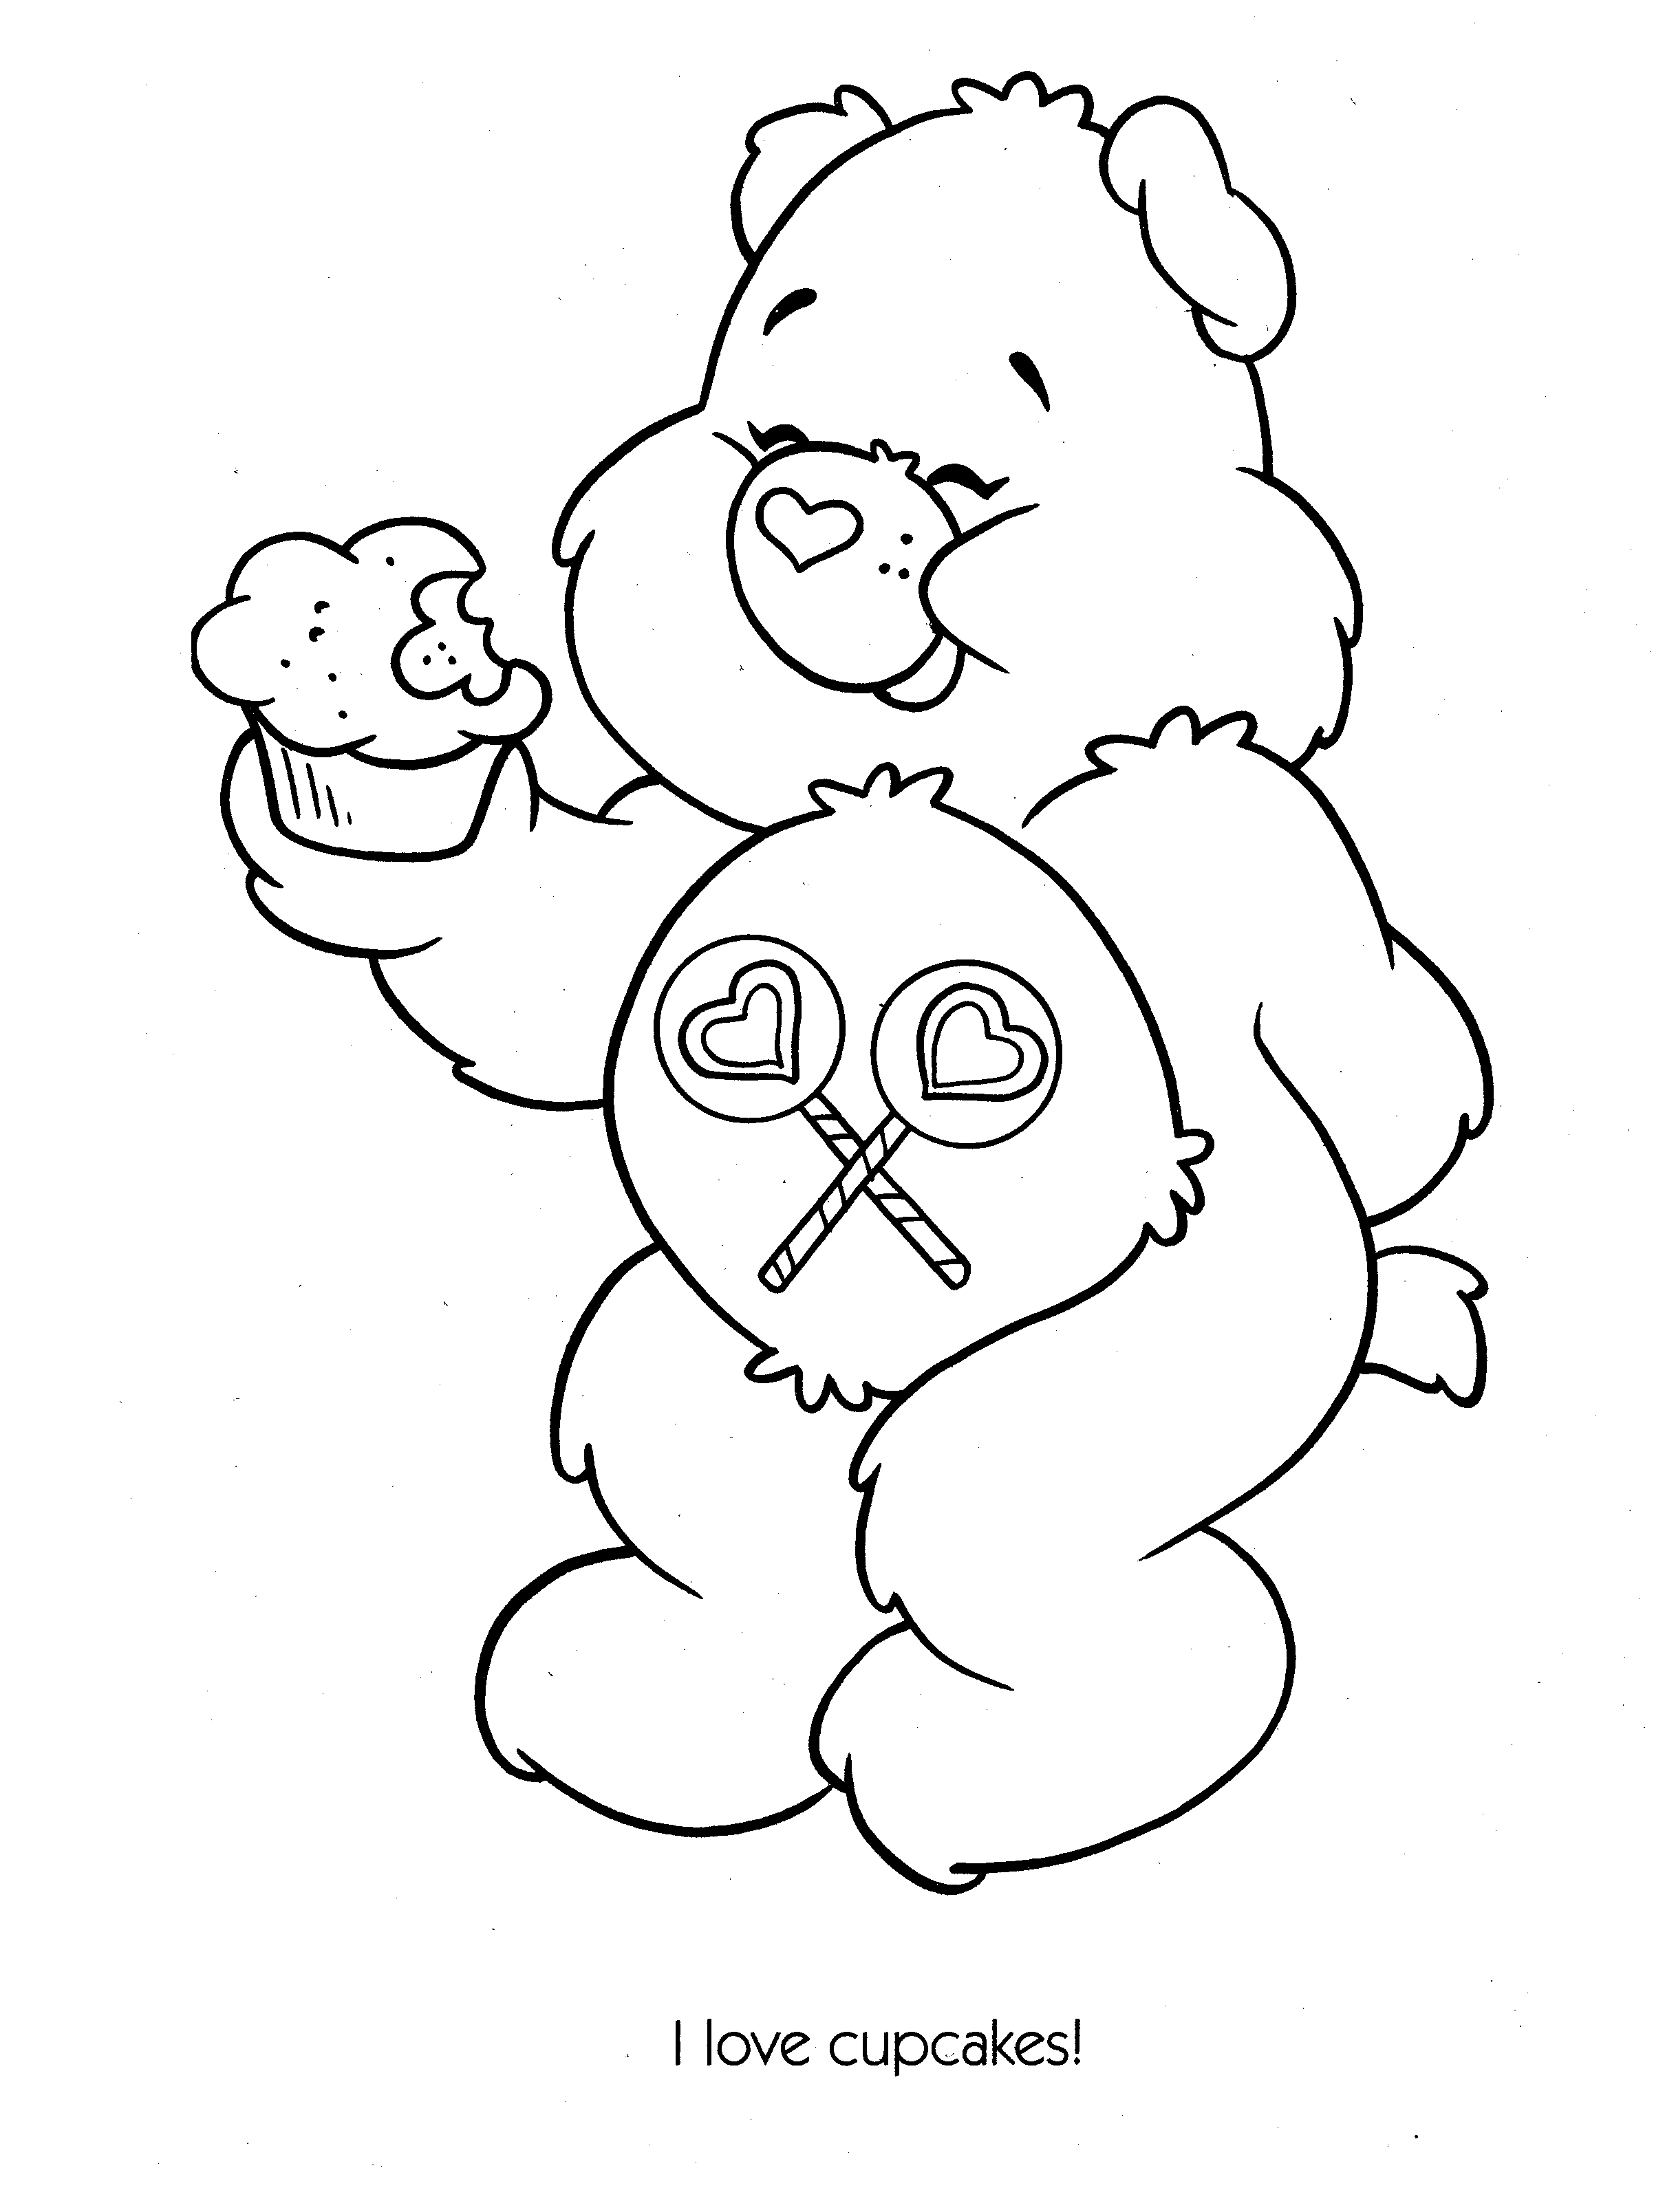 Holiday Coloring Pages care bear coloring pages : CareBears020.jpg